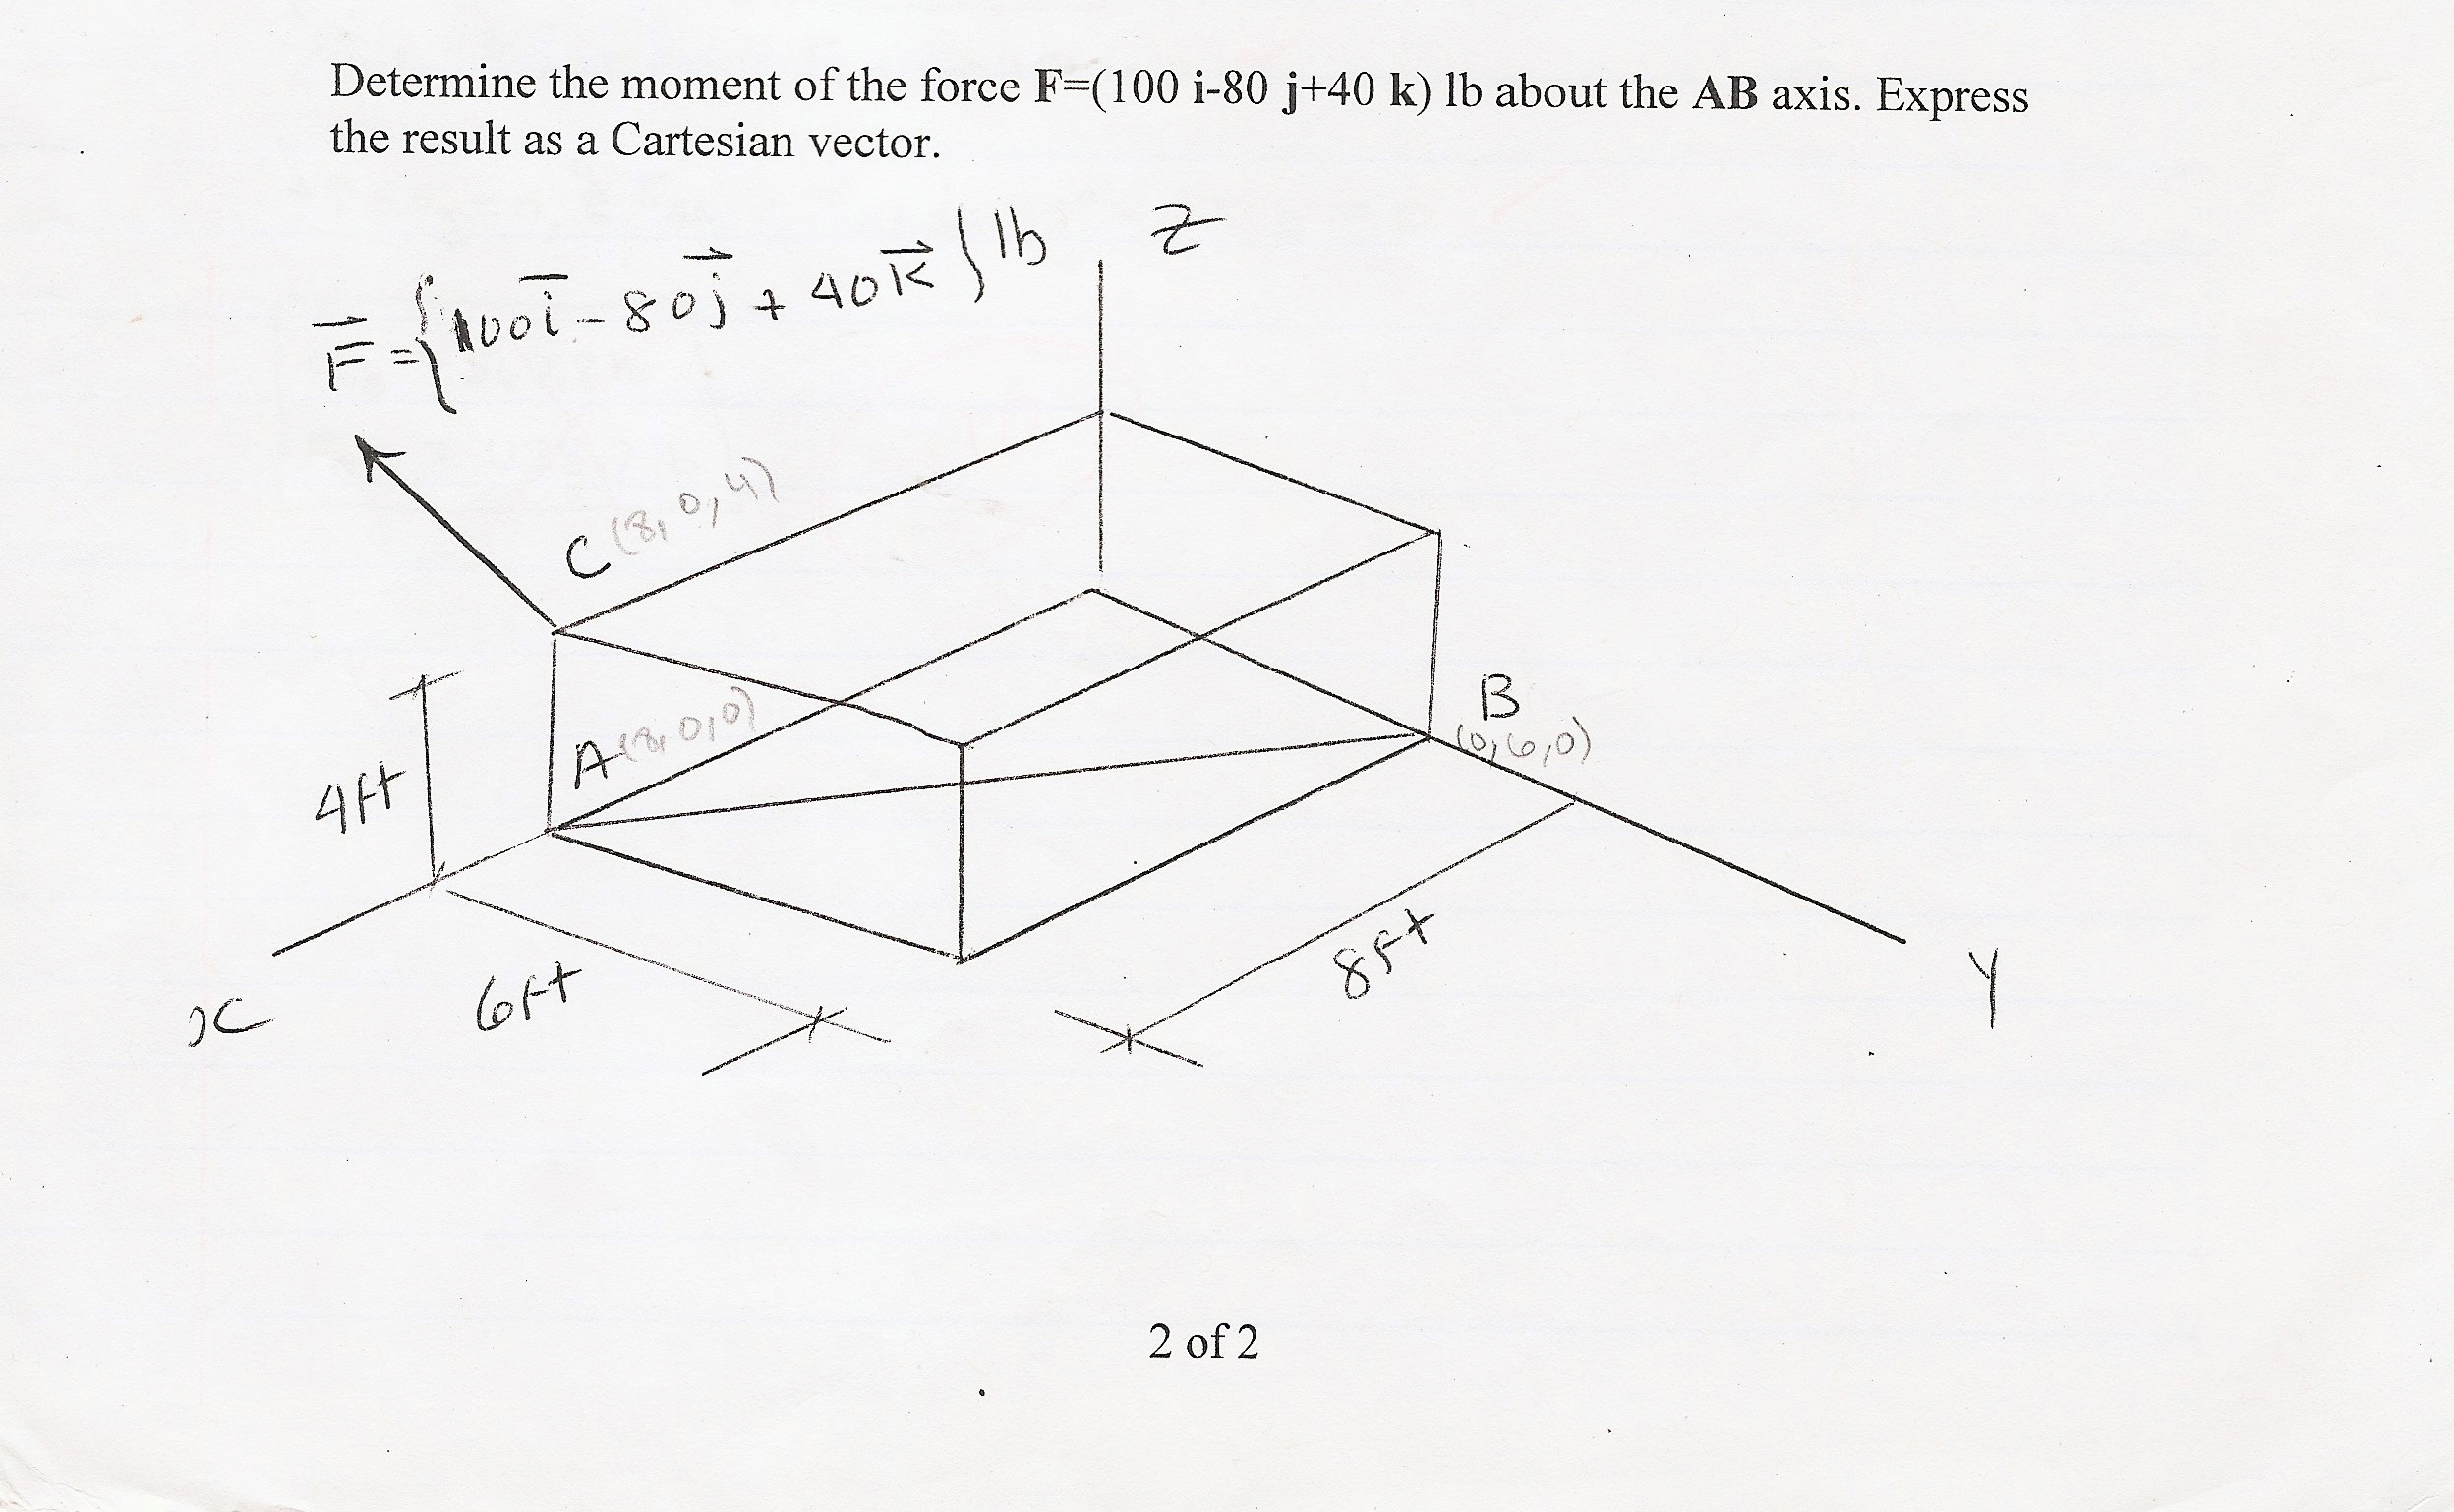 Determine the moment of the force F=(100 i-80 j+40